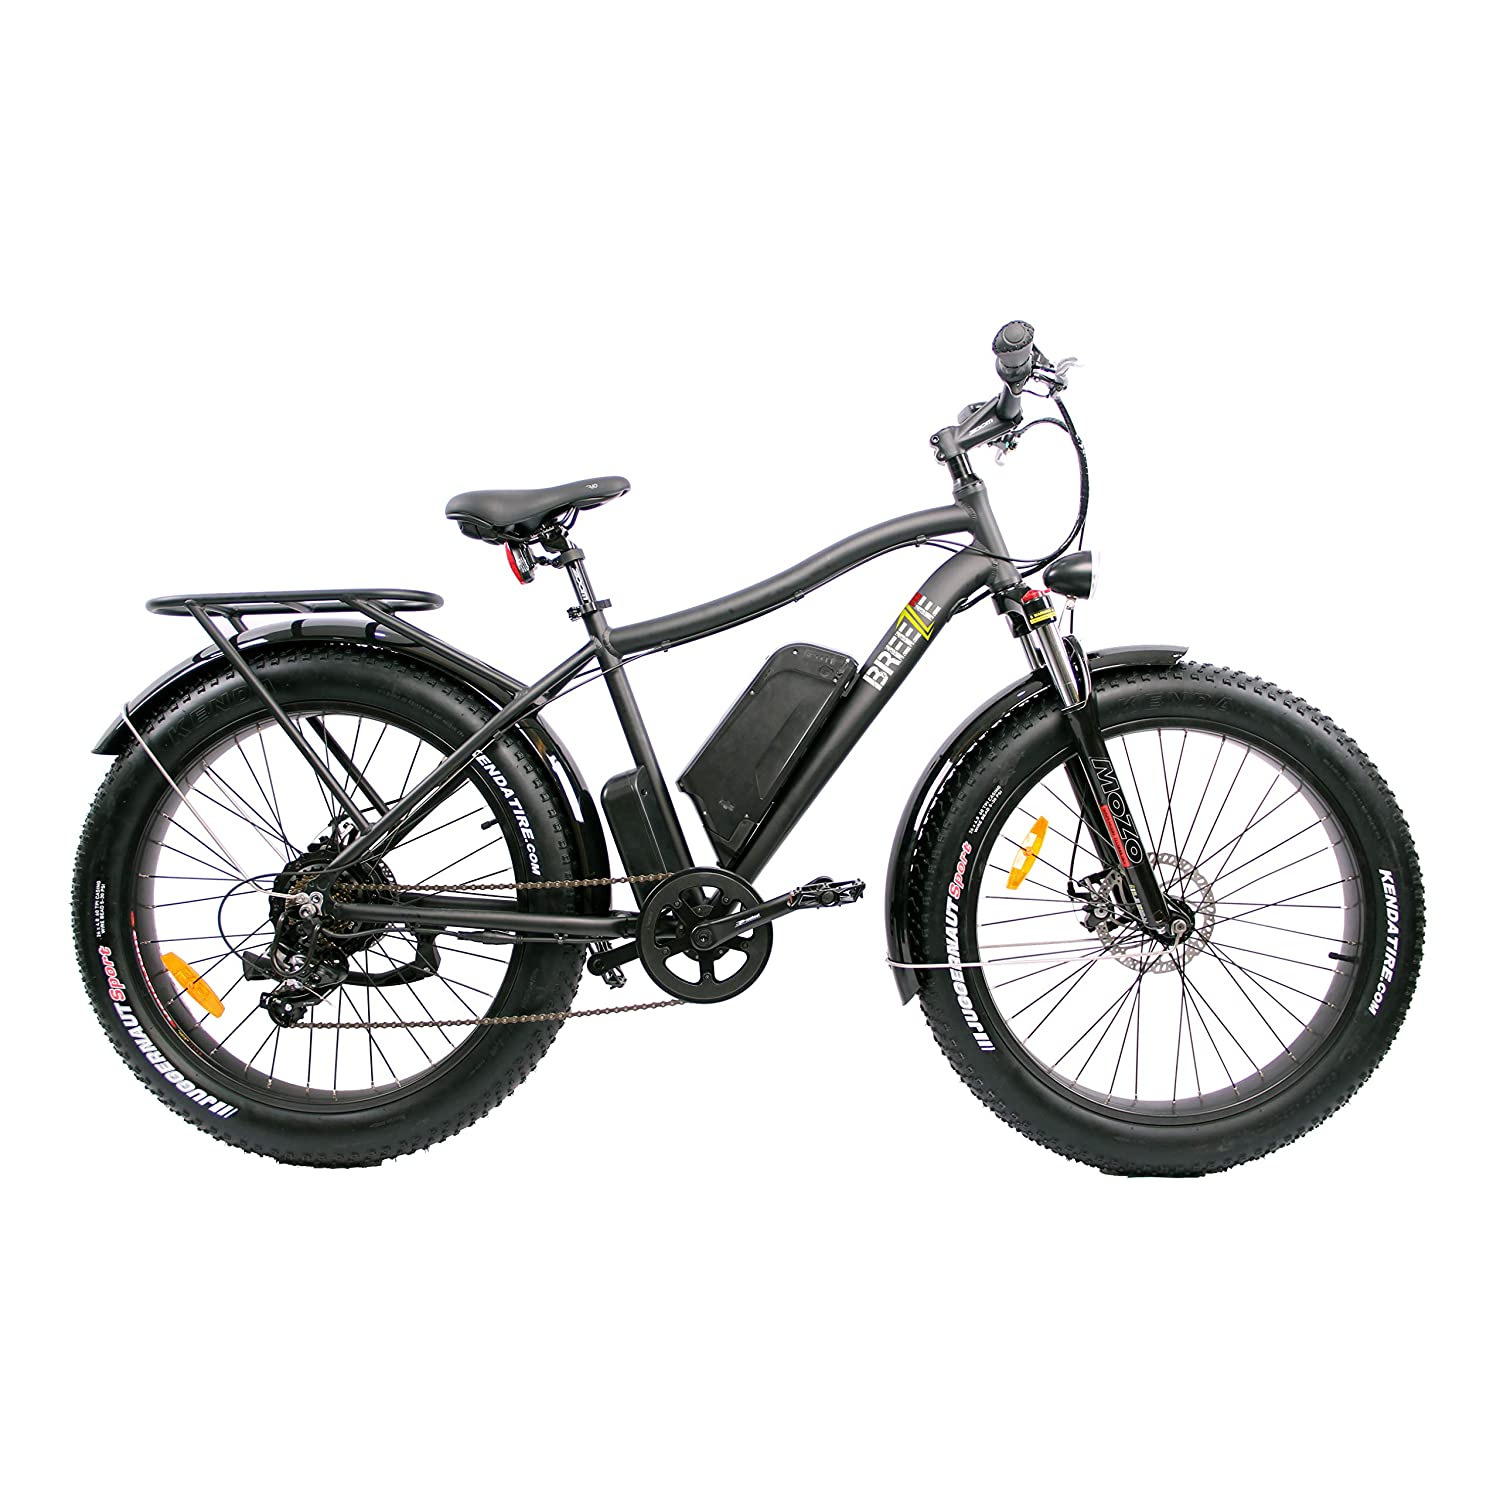 Fat Tire Electric Bike SAFECASTLE BREEZE PRO 750W Beach Snow Bicycle 26 4.0inch Fat Tire ebike 48V 11.6Ah Electric Mountain Bicycle,electric bike for adults,Shimano 7Speeds Li-Ion Battery-19 Black